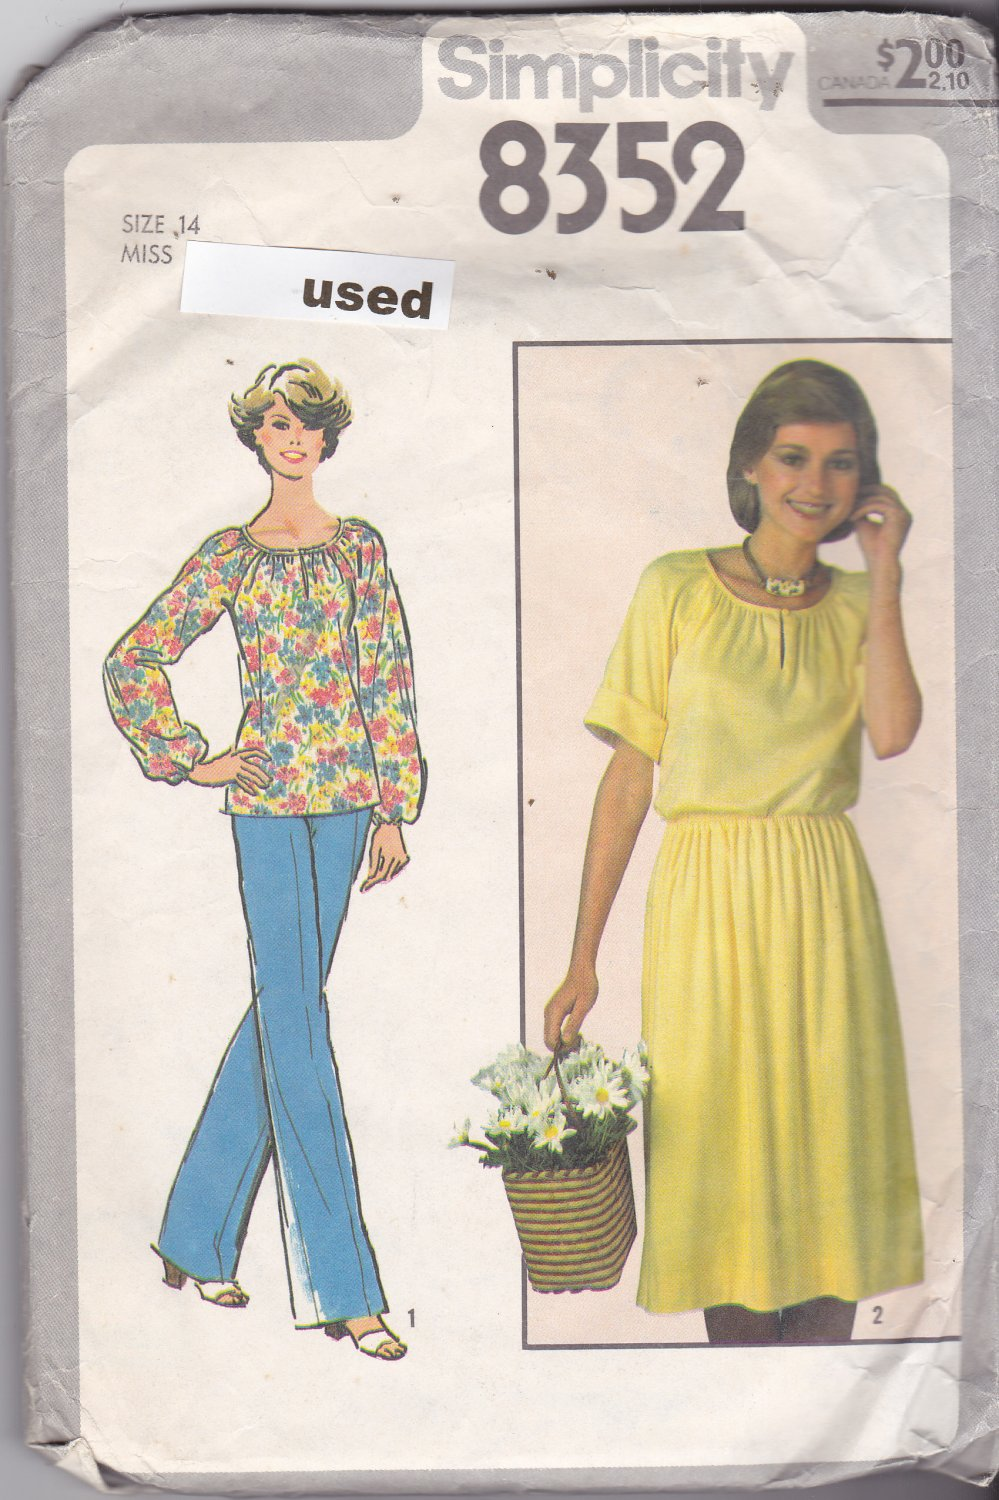 Simplicity 8352 size 14, may be missing pieces